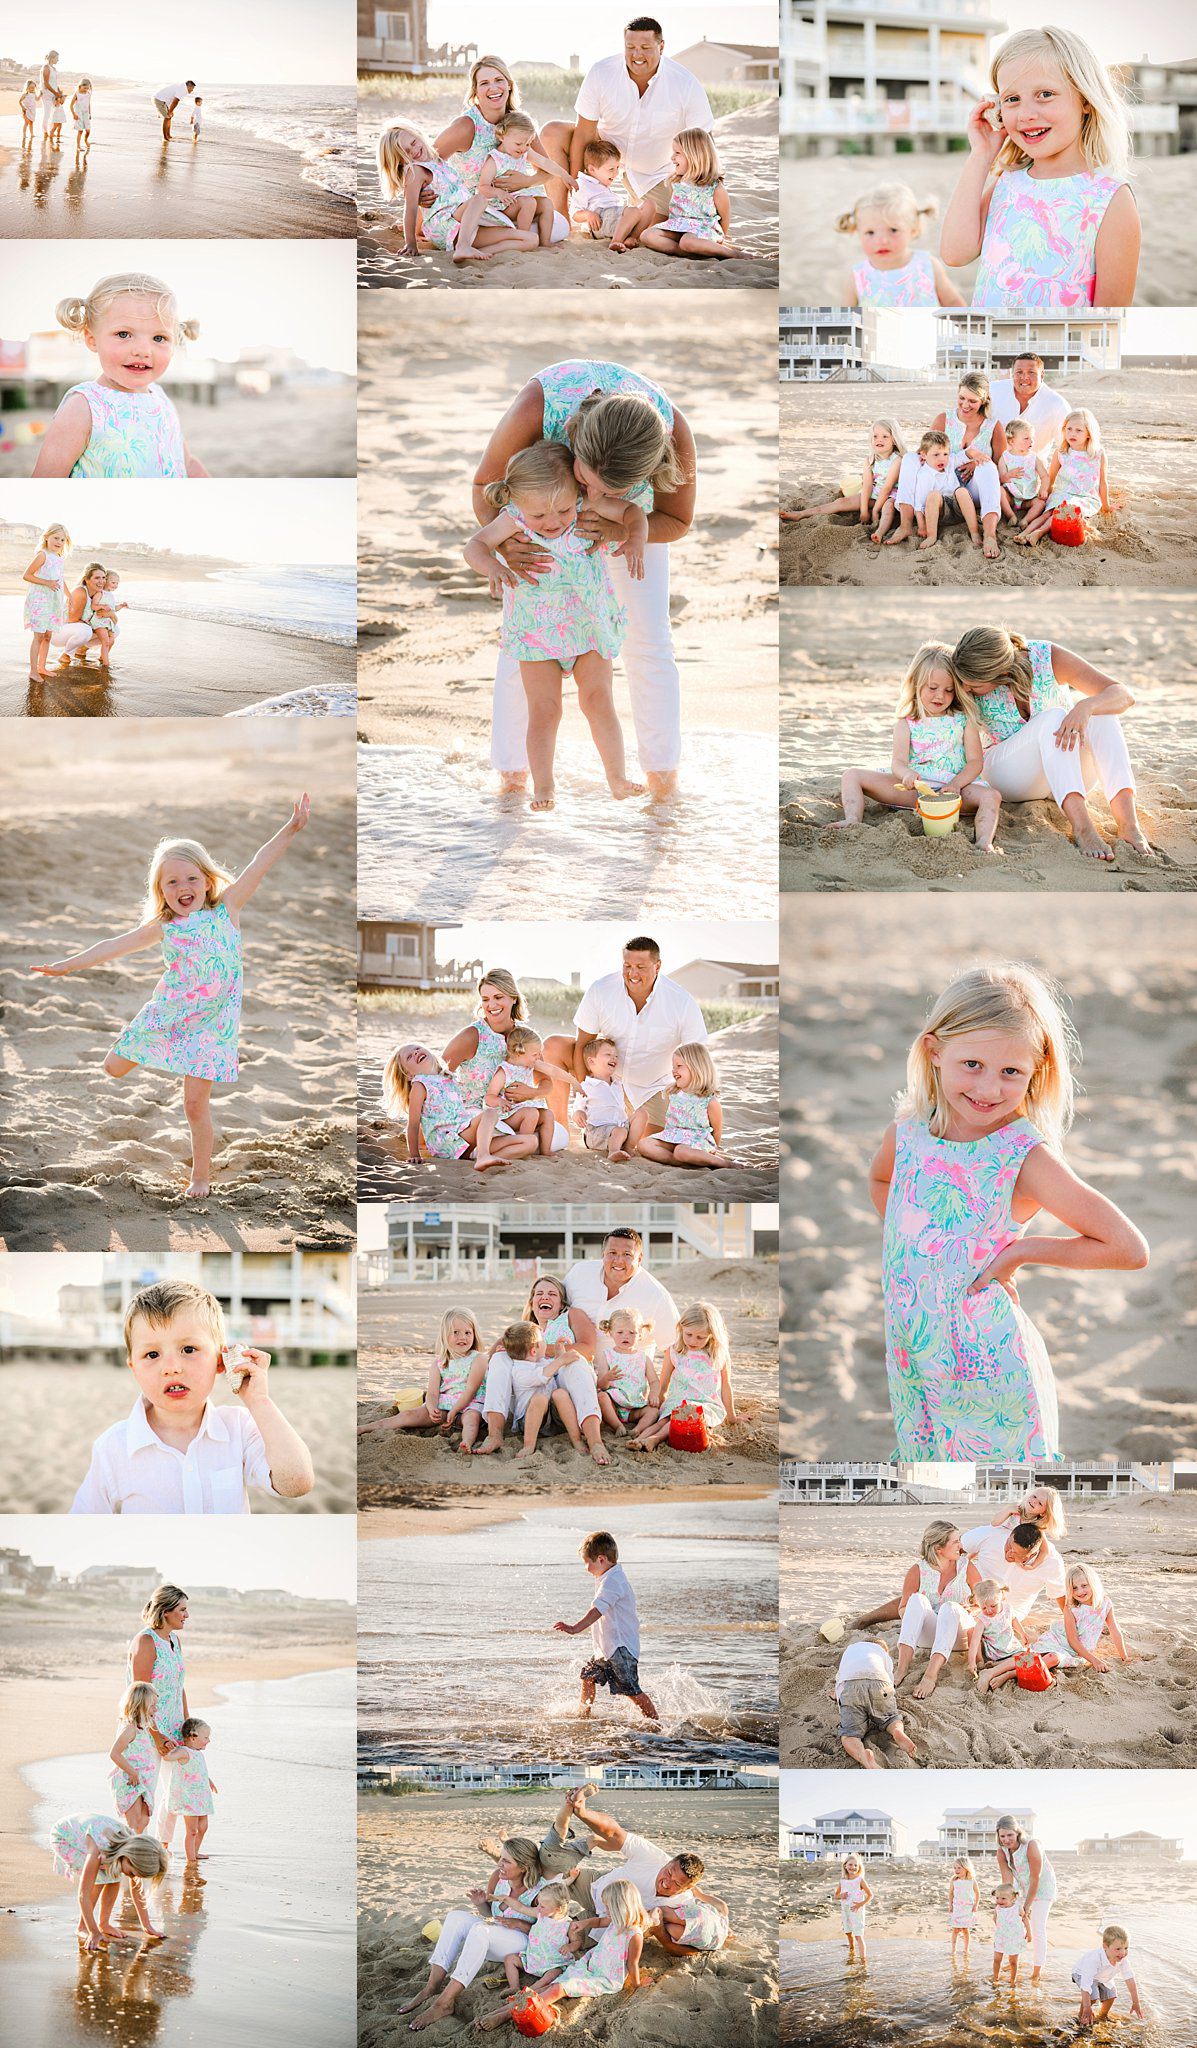 family-lifestyle-beach-photos-inspiration-for-candid-family-beach-pictures-melissa-bliss-photography.jpg